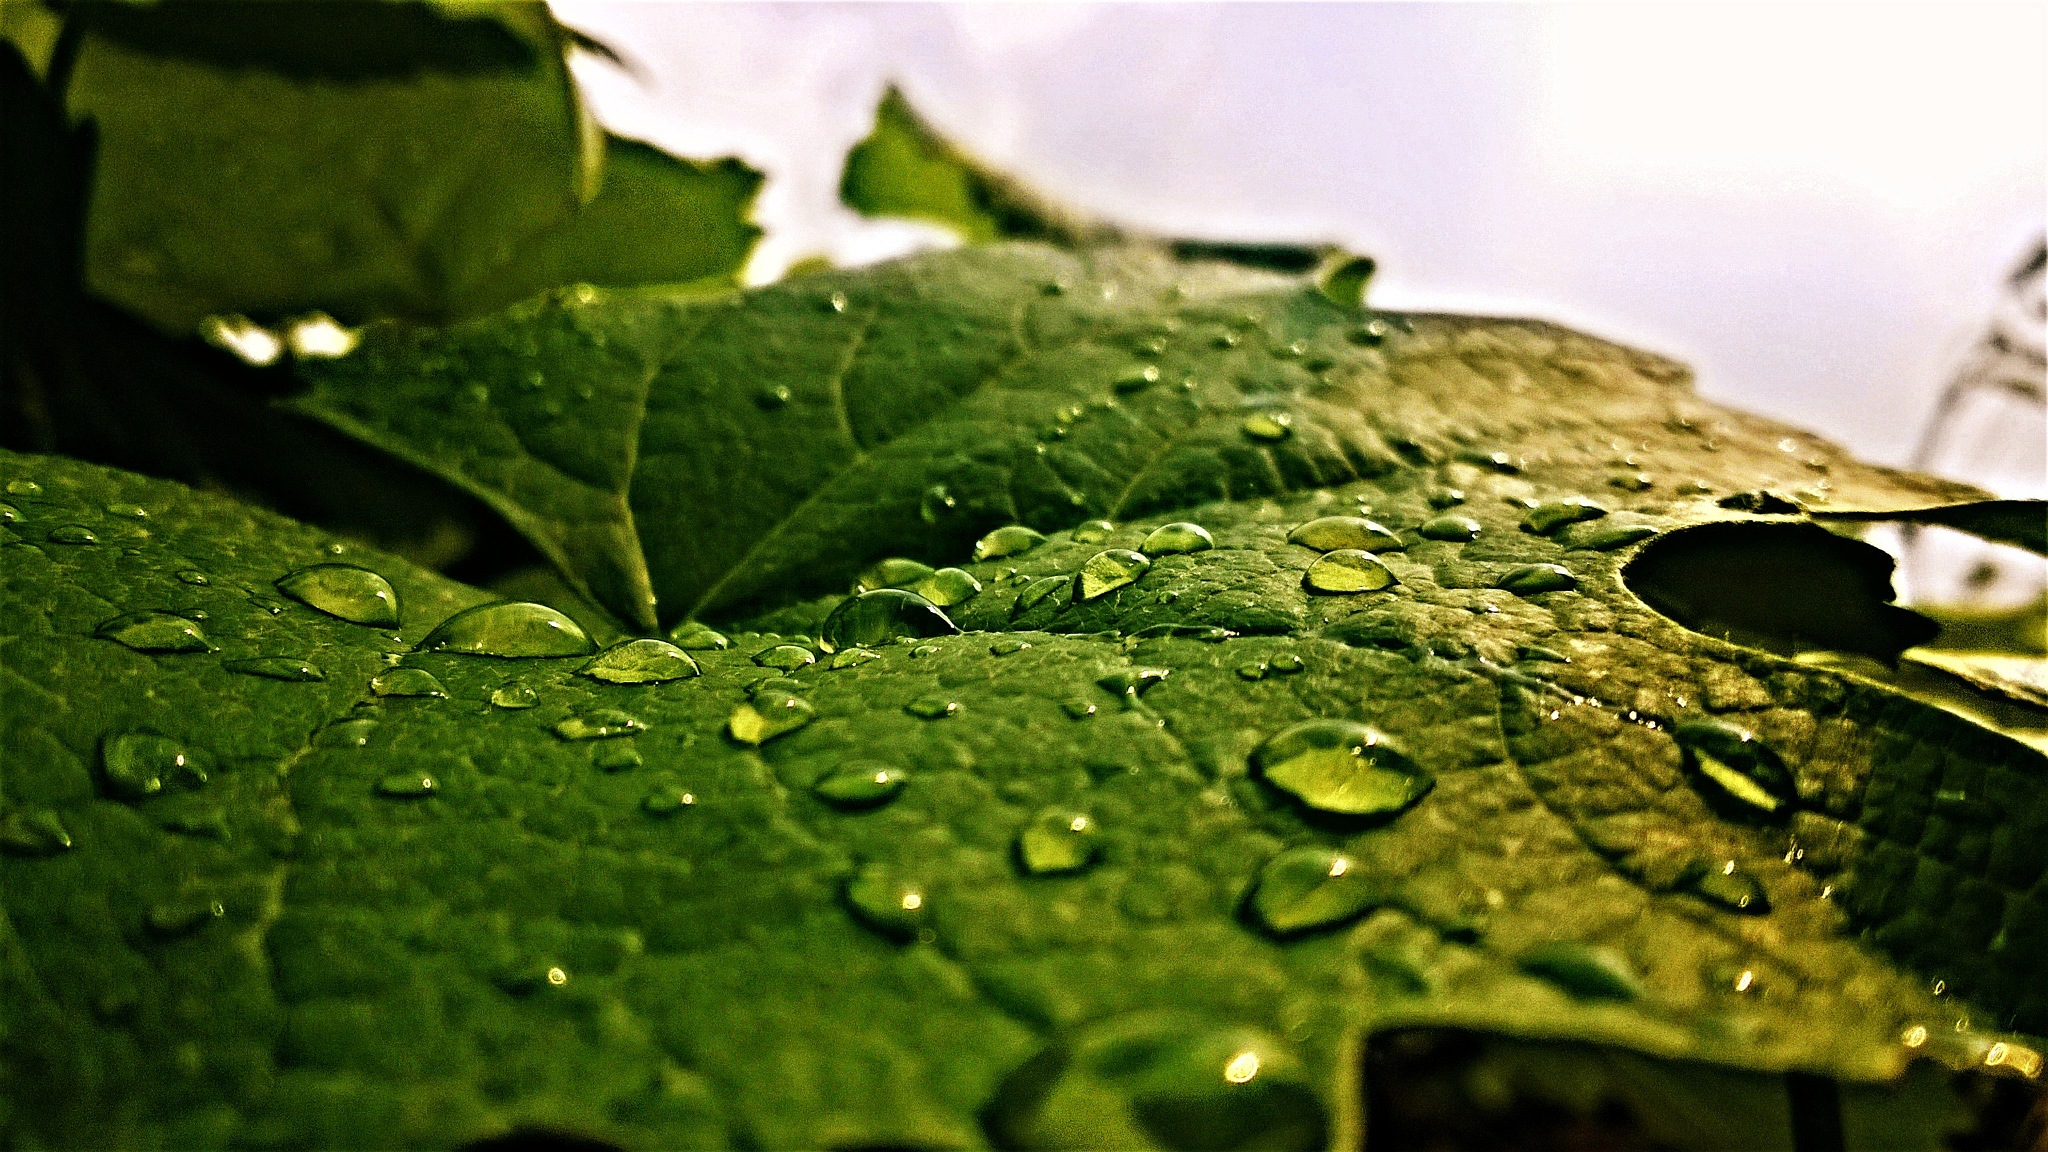 Water Drops  by Chethan2260